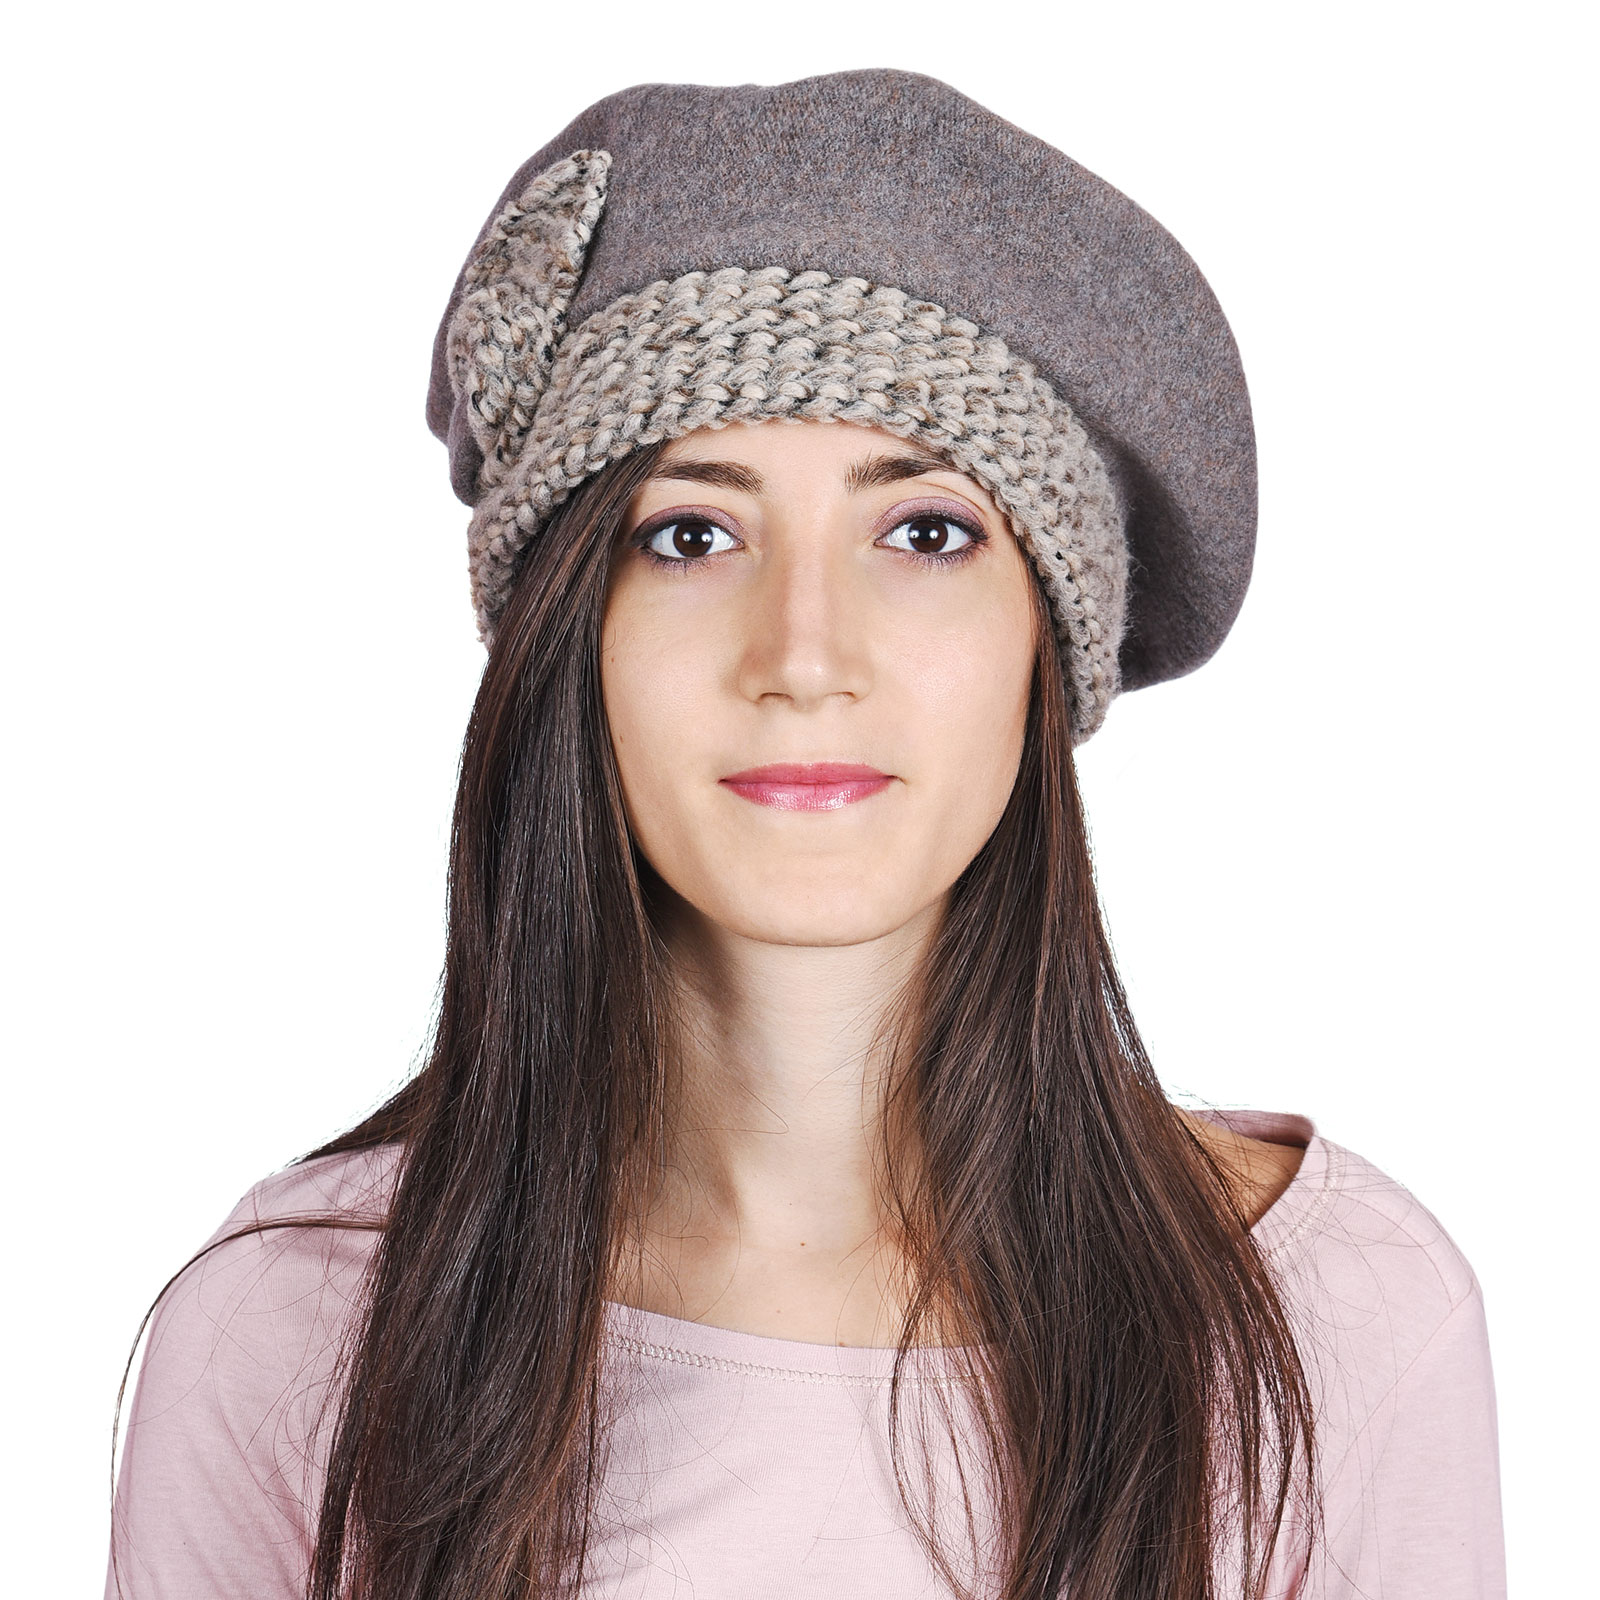 CP-01000-VF16-P-beret-femme-hiver-marron-taupe